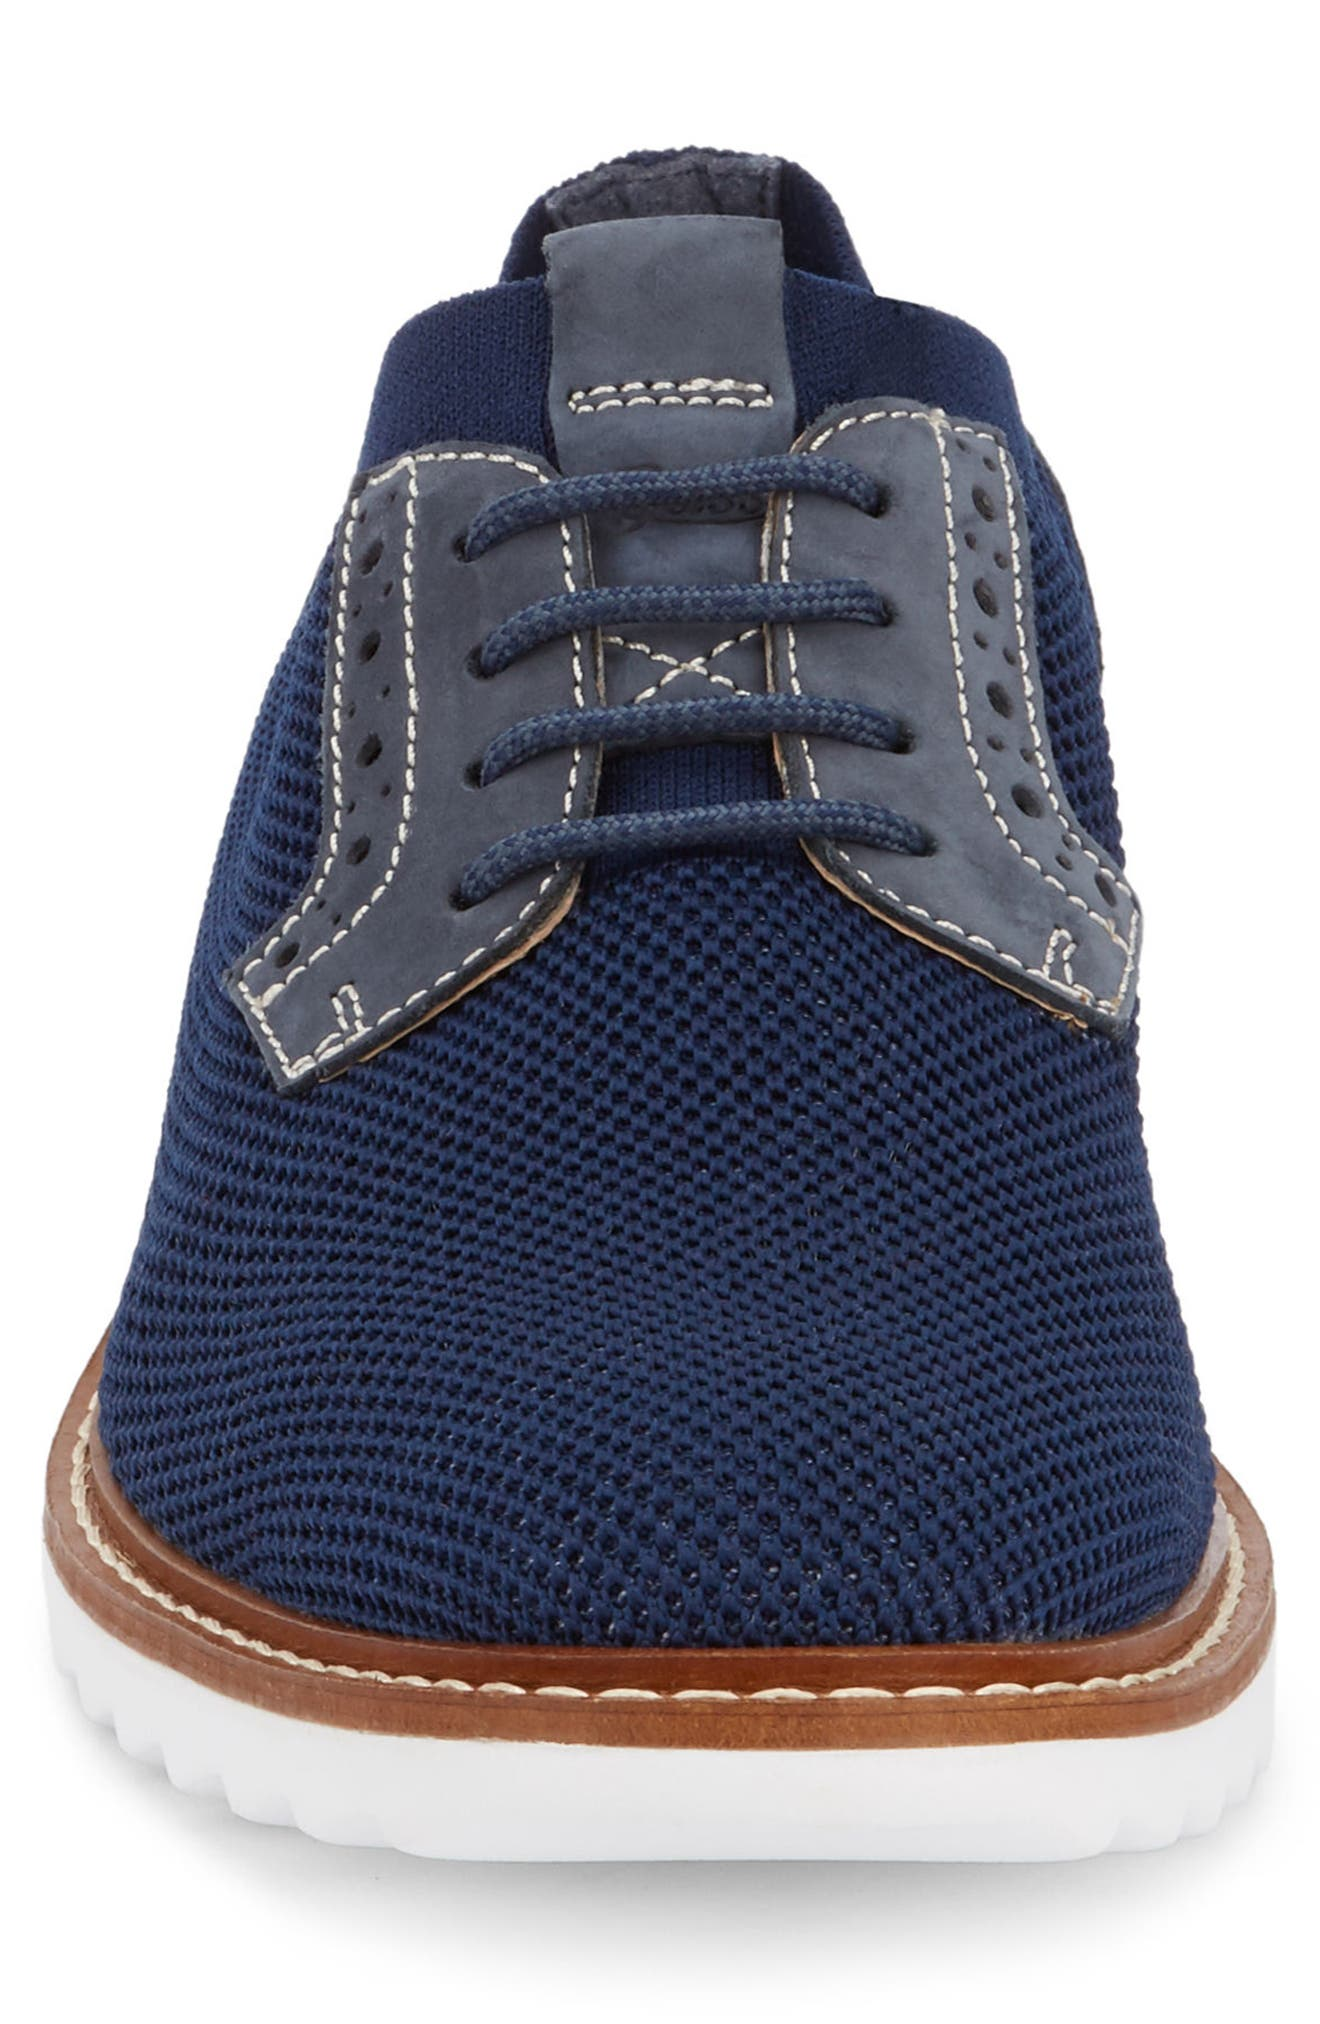 Buck 2.0 Plain Toe Derby,                             Alternate thumbnail 4, color,                             Royal Blue Knit/ Nubuck